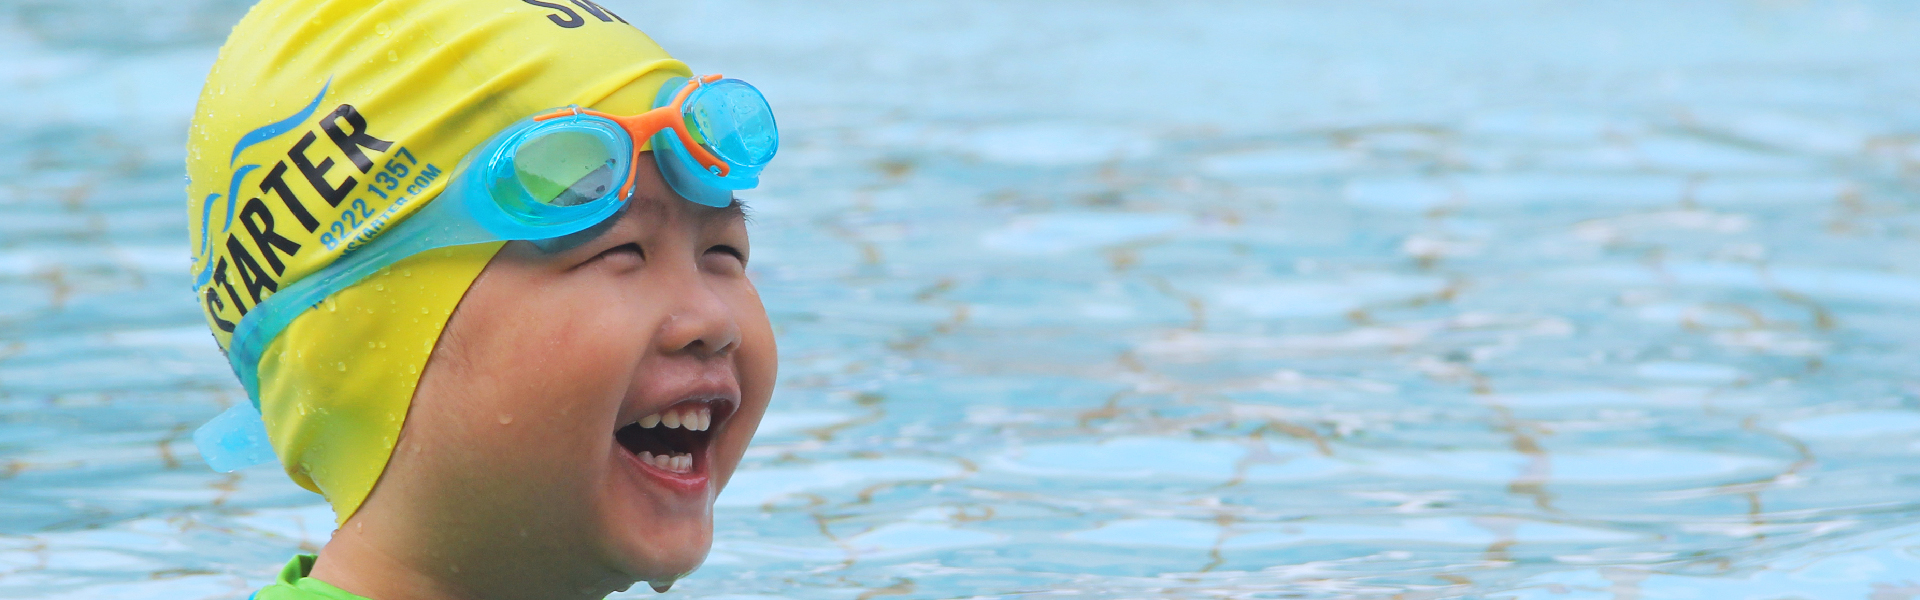 Child smiling with the guarantee of being able to swim in 6 months